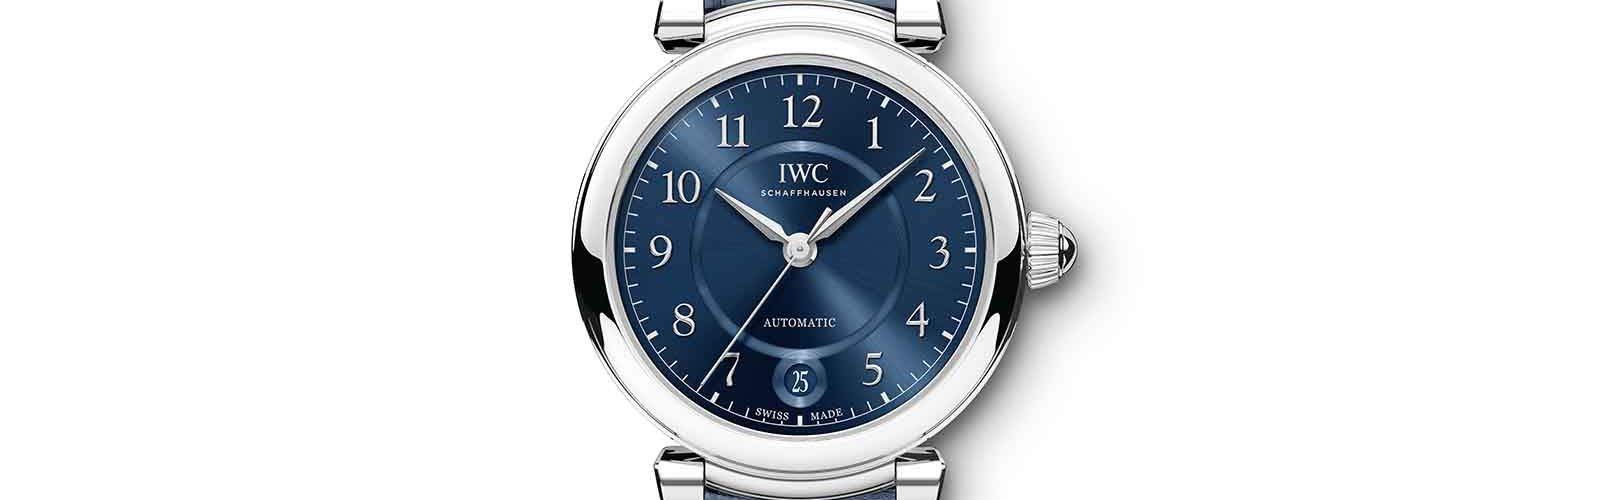 IWC DA VINCI 36mm MOONPHASE